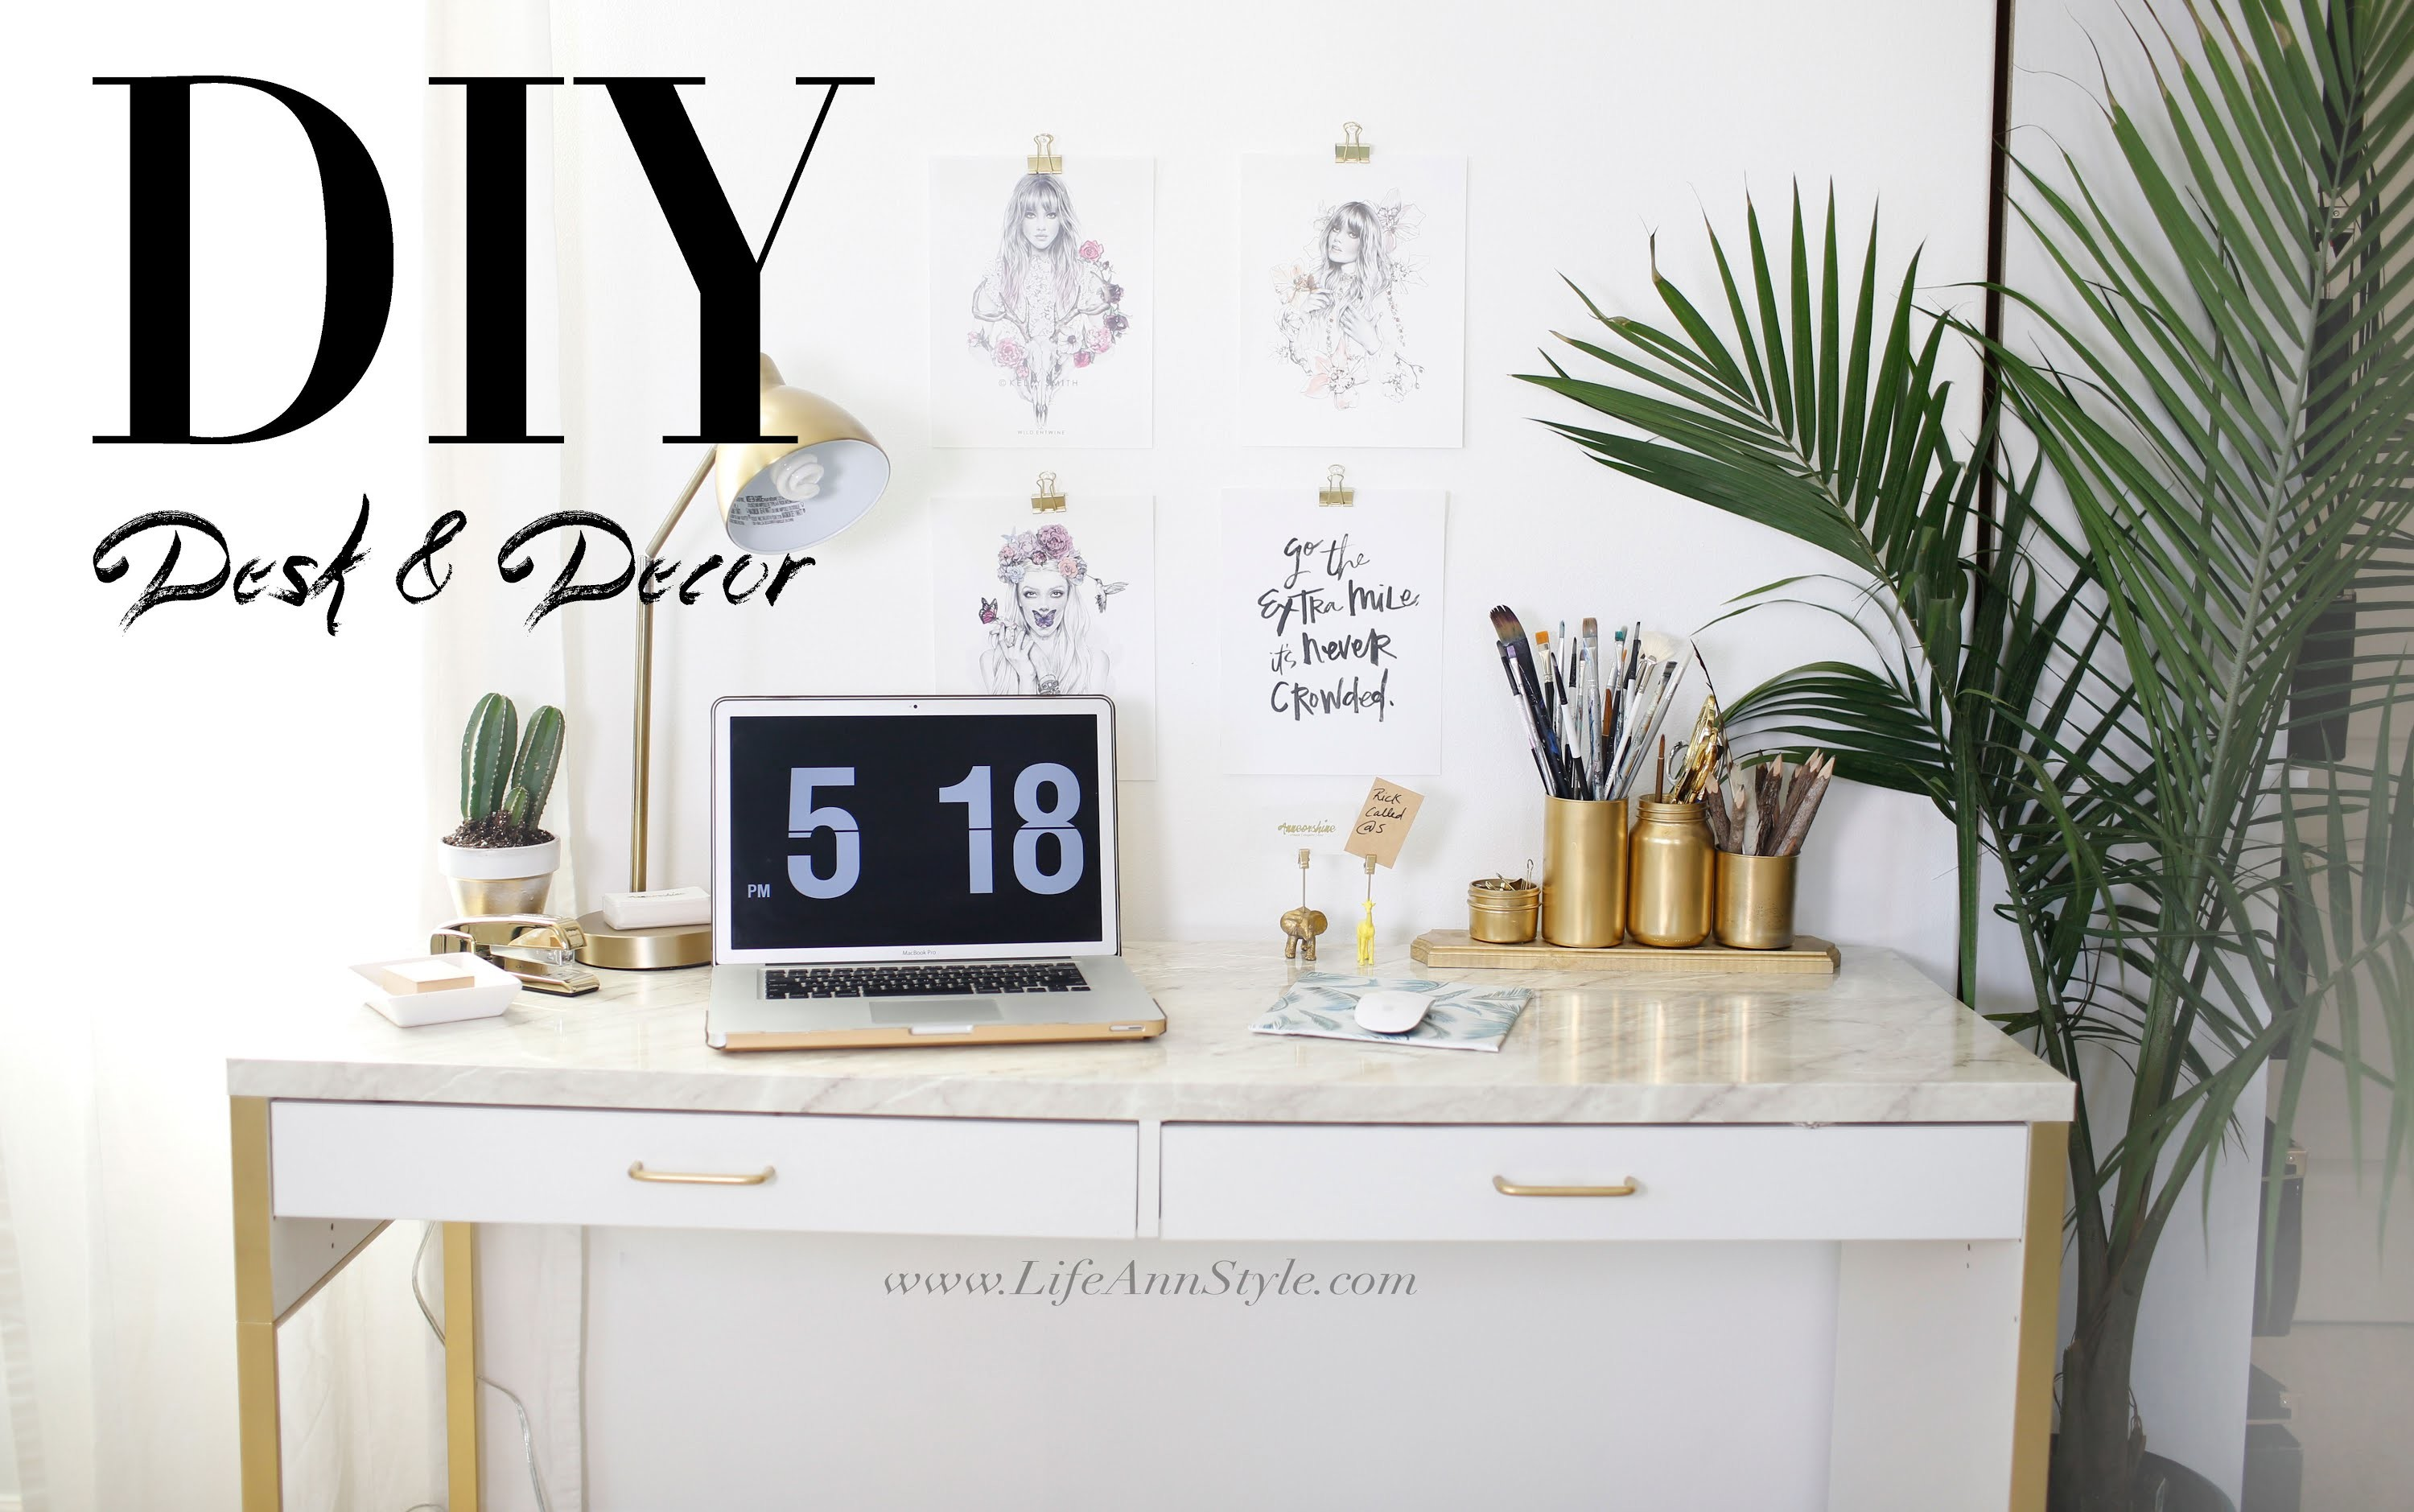 5 EASY DIY Desk Decor & Organization IKEA Hacks | ANNEORSHINE